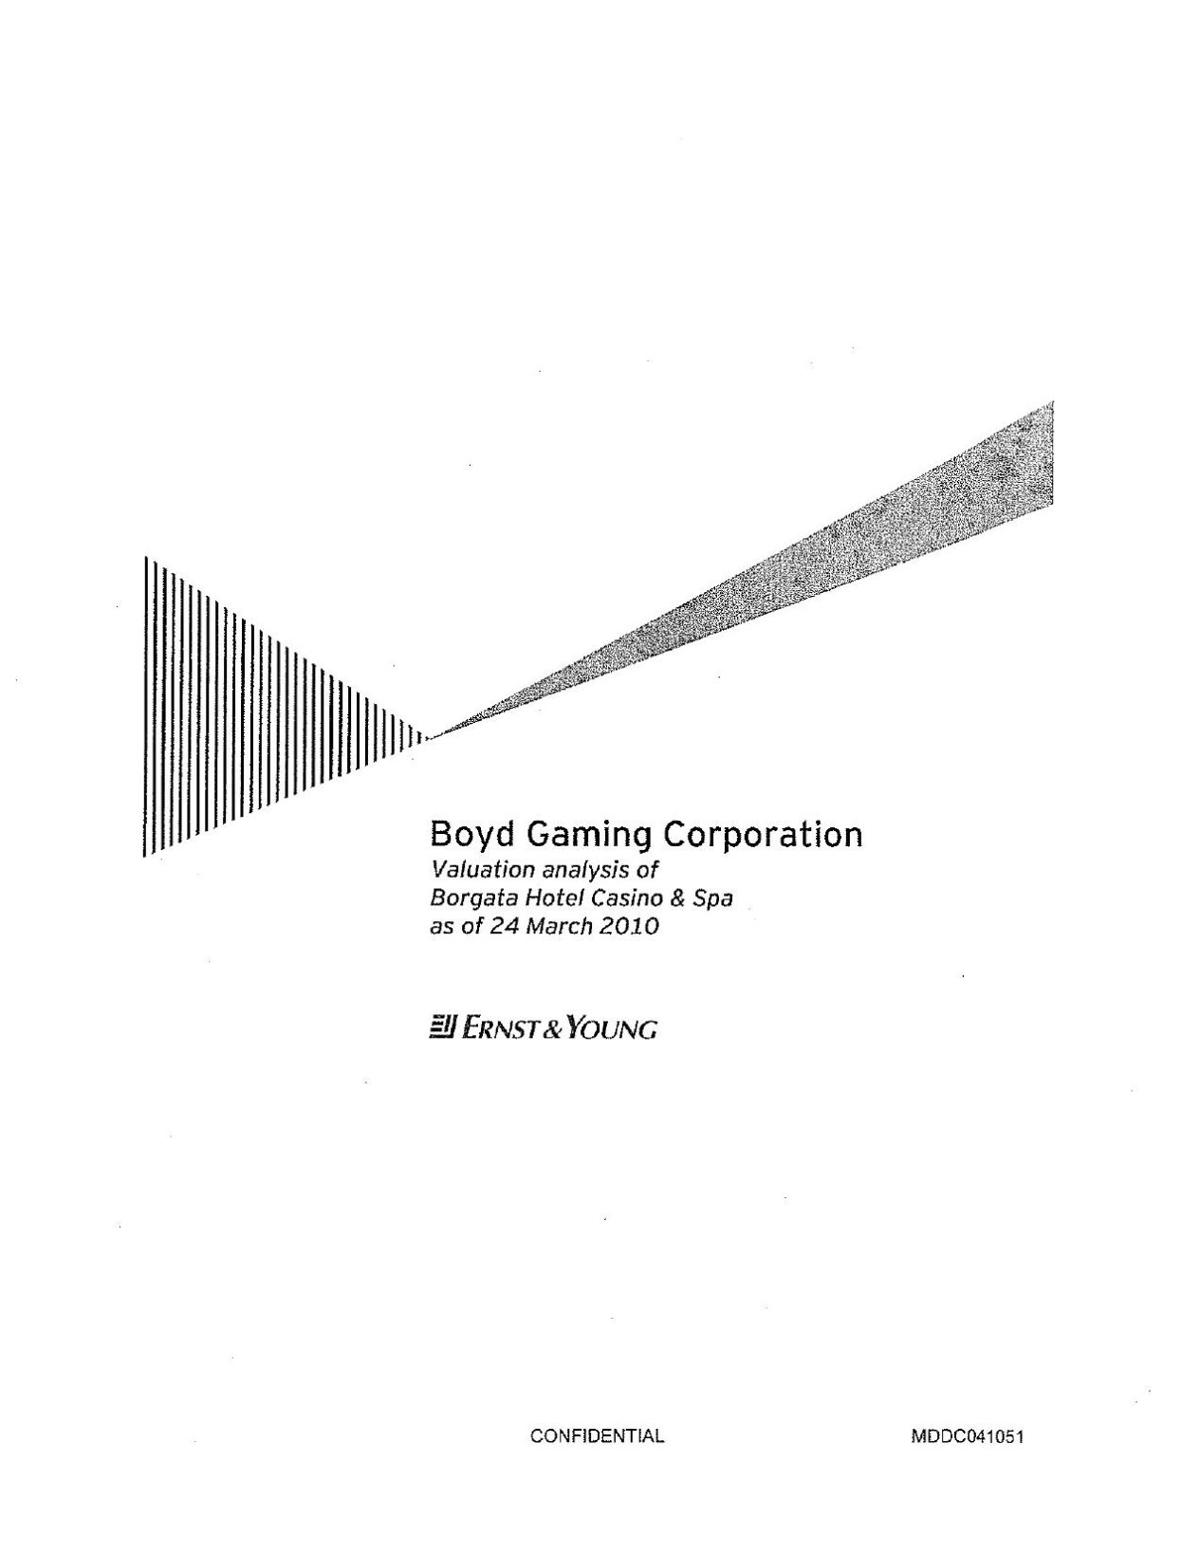 report on ernst young Ernst & young llp company research & investing information find executives and the latest company news.